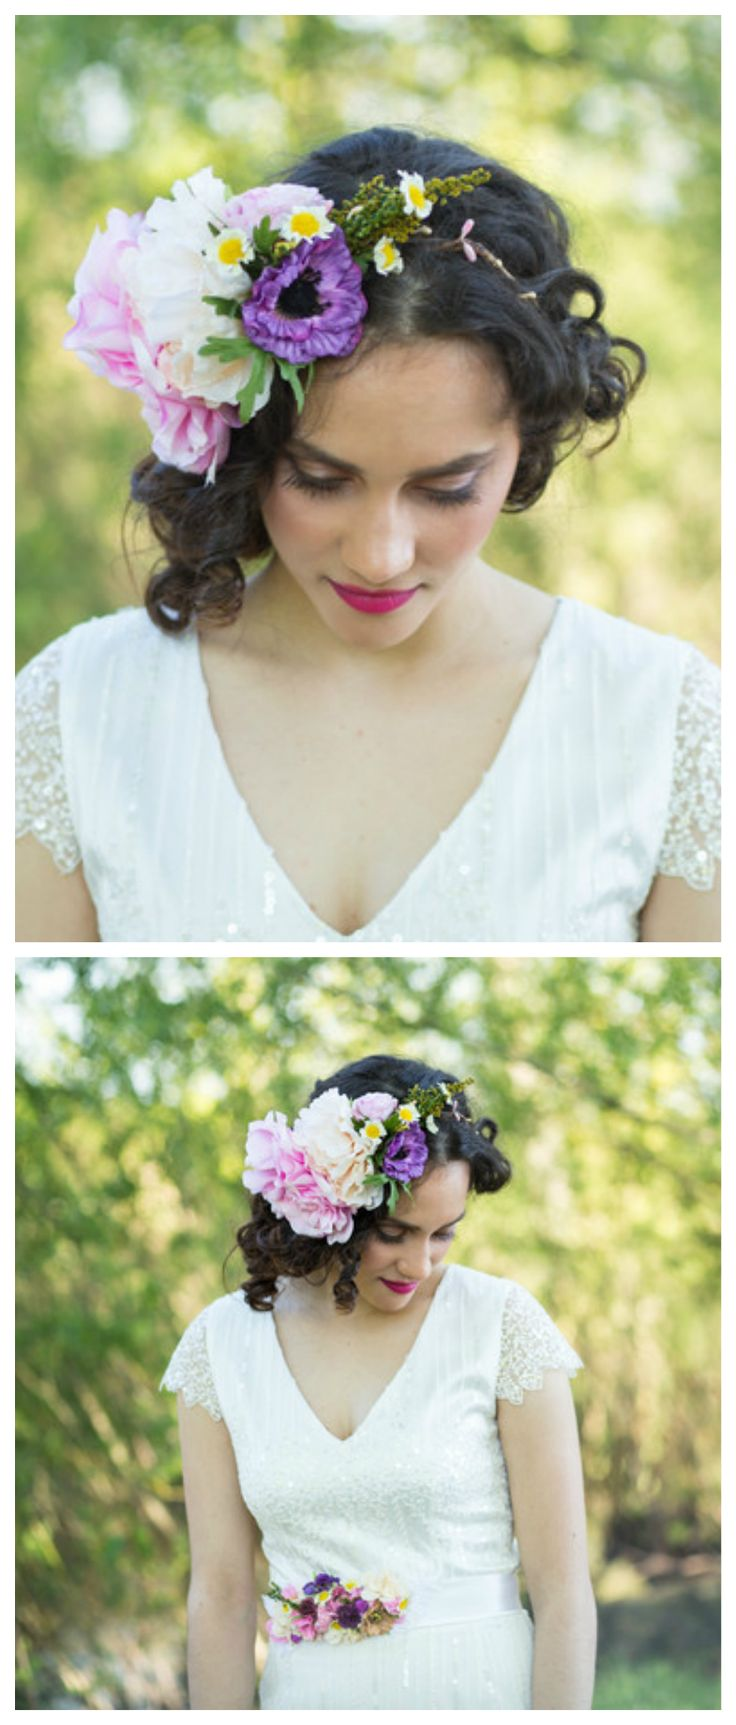 85 best hochzeit images on Pinterest   Florists, Branches and Flower ...